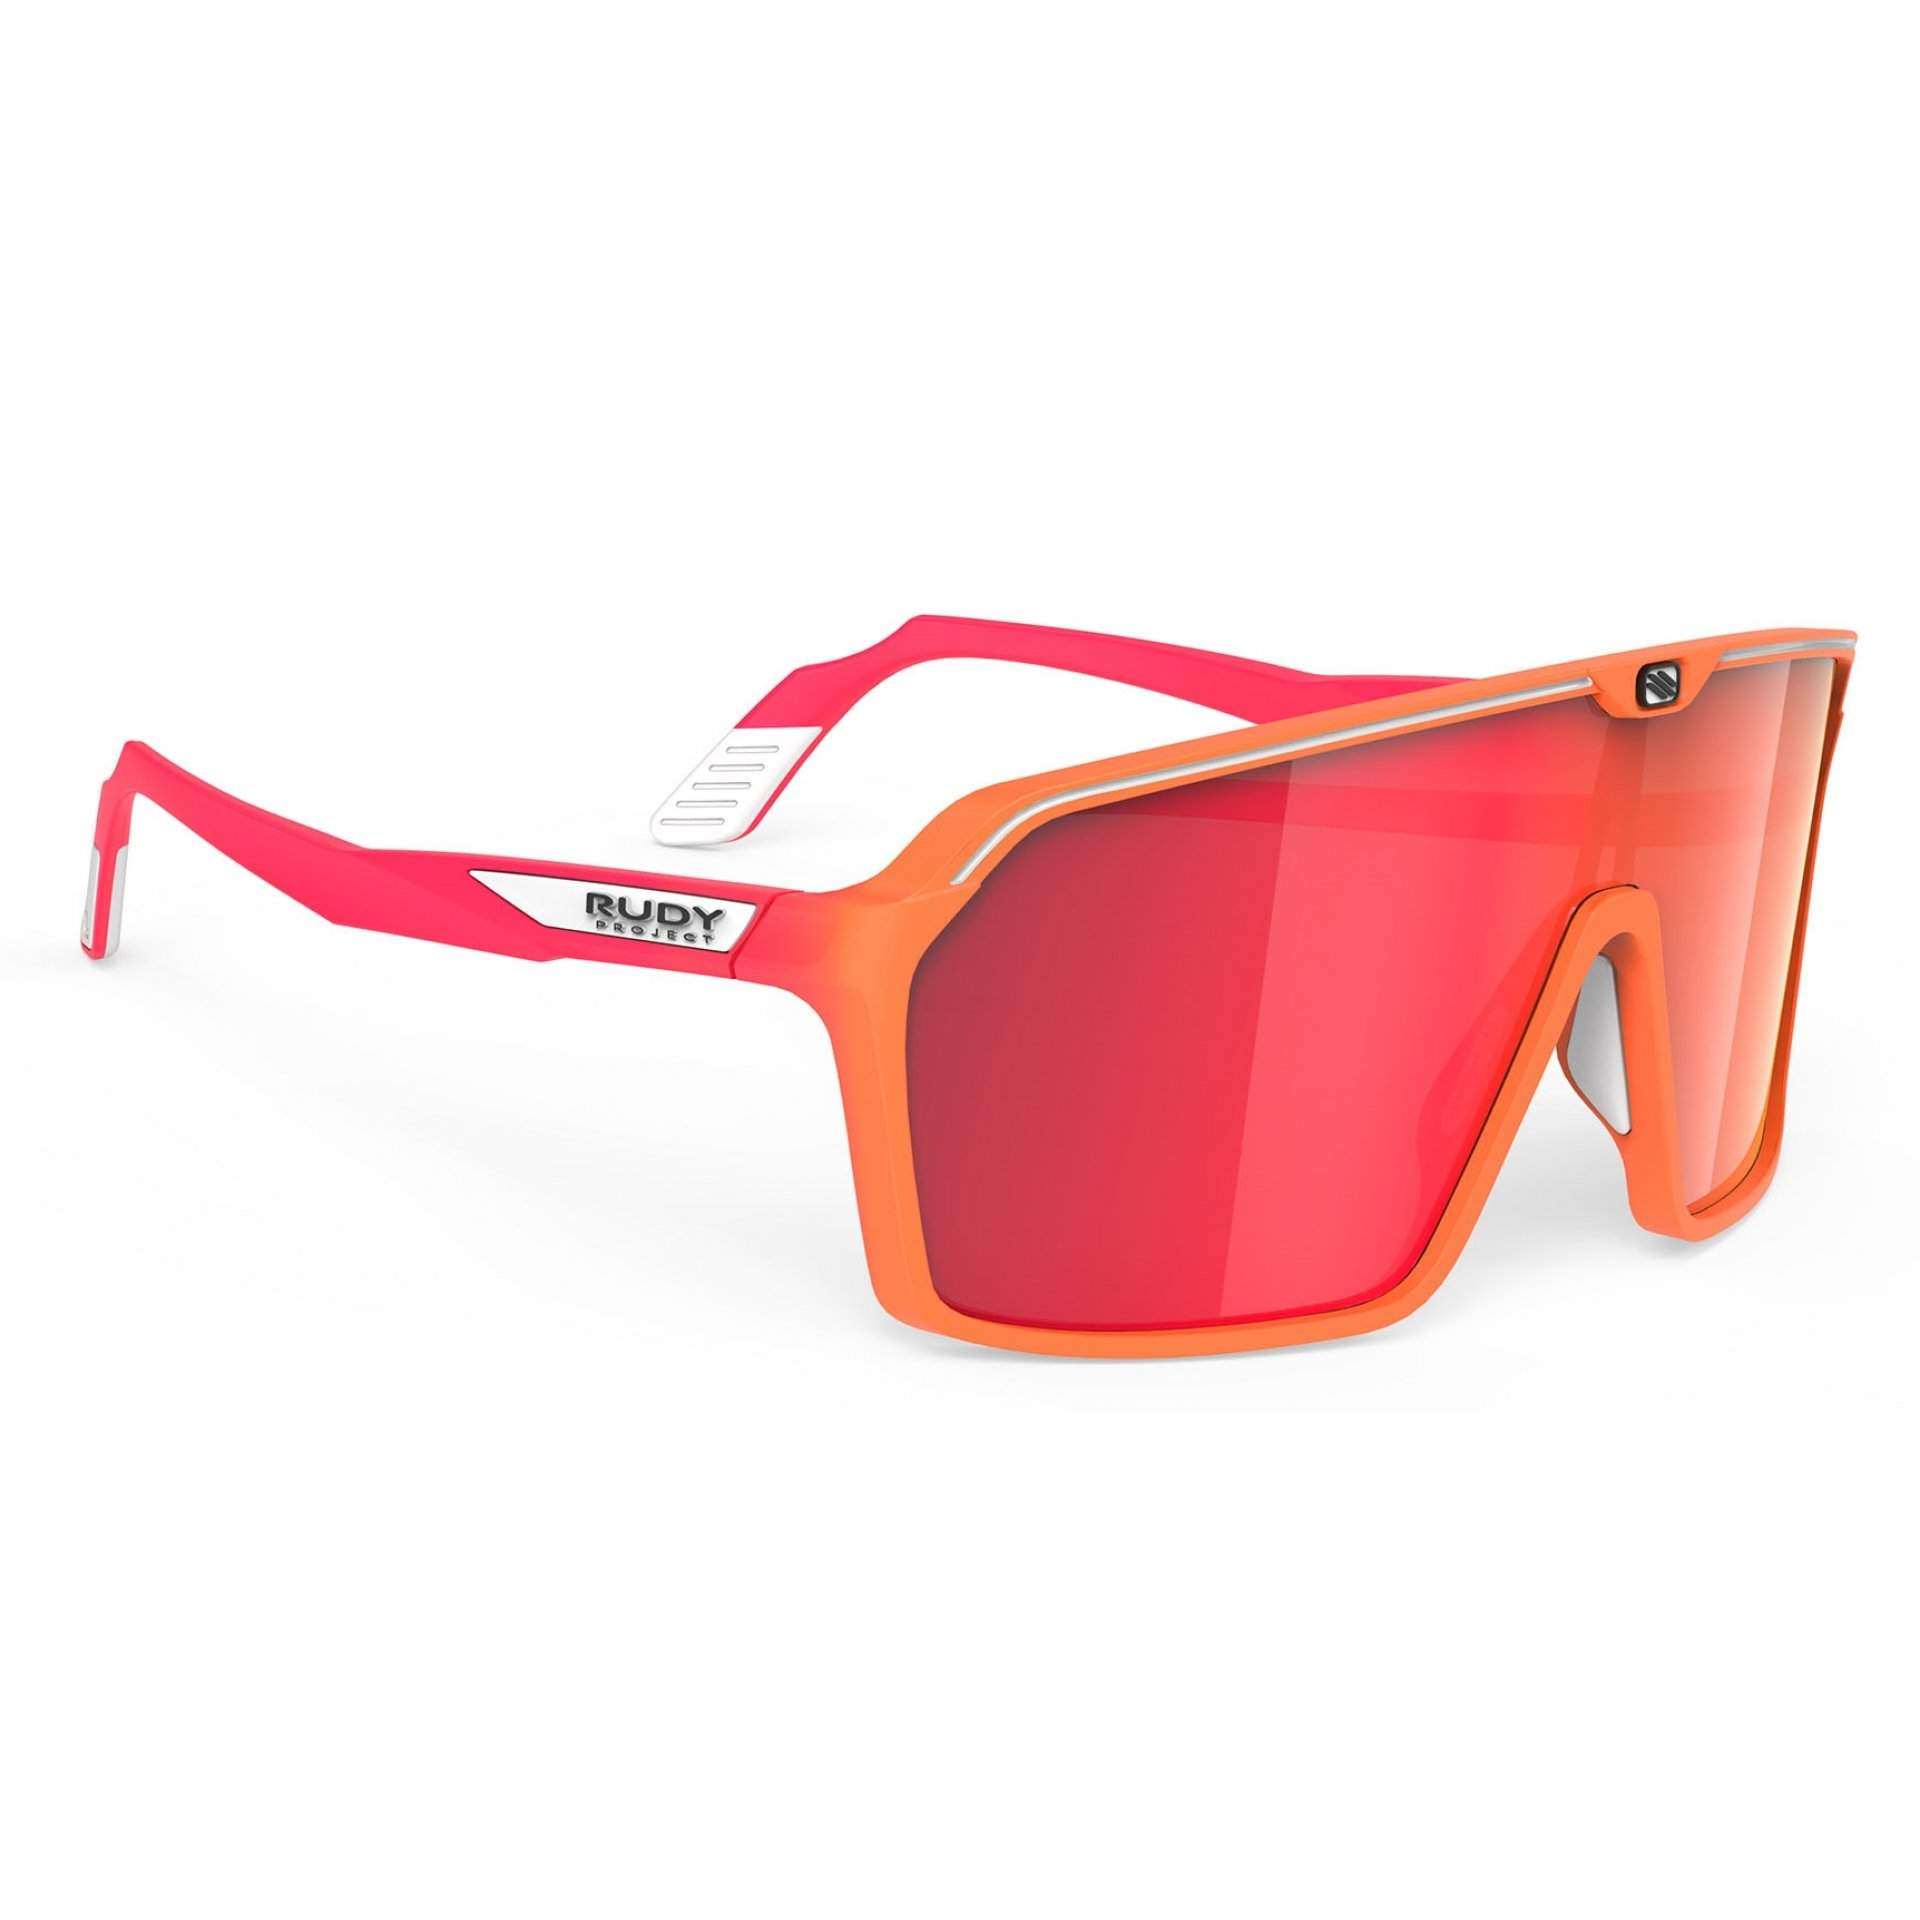 OKULARY RUDY PROJECT SPINSHIELD MULTILASER RED + MANDARIN FADE|CORAL MATTE SP7238460011